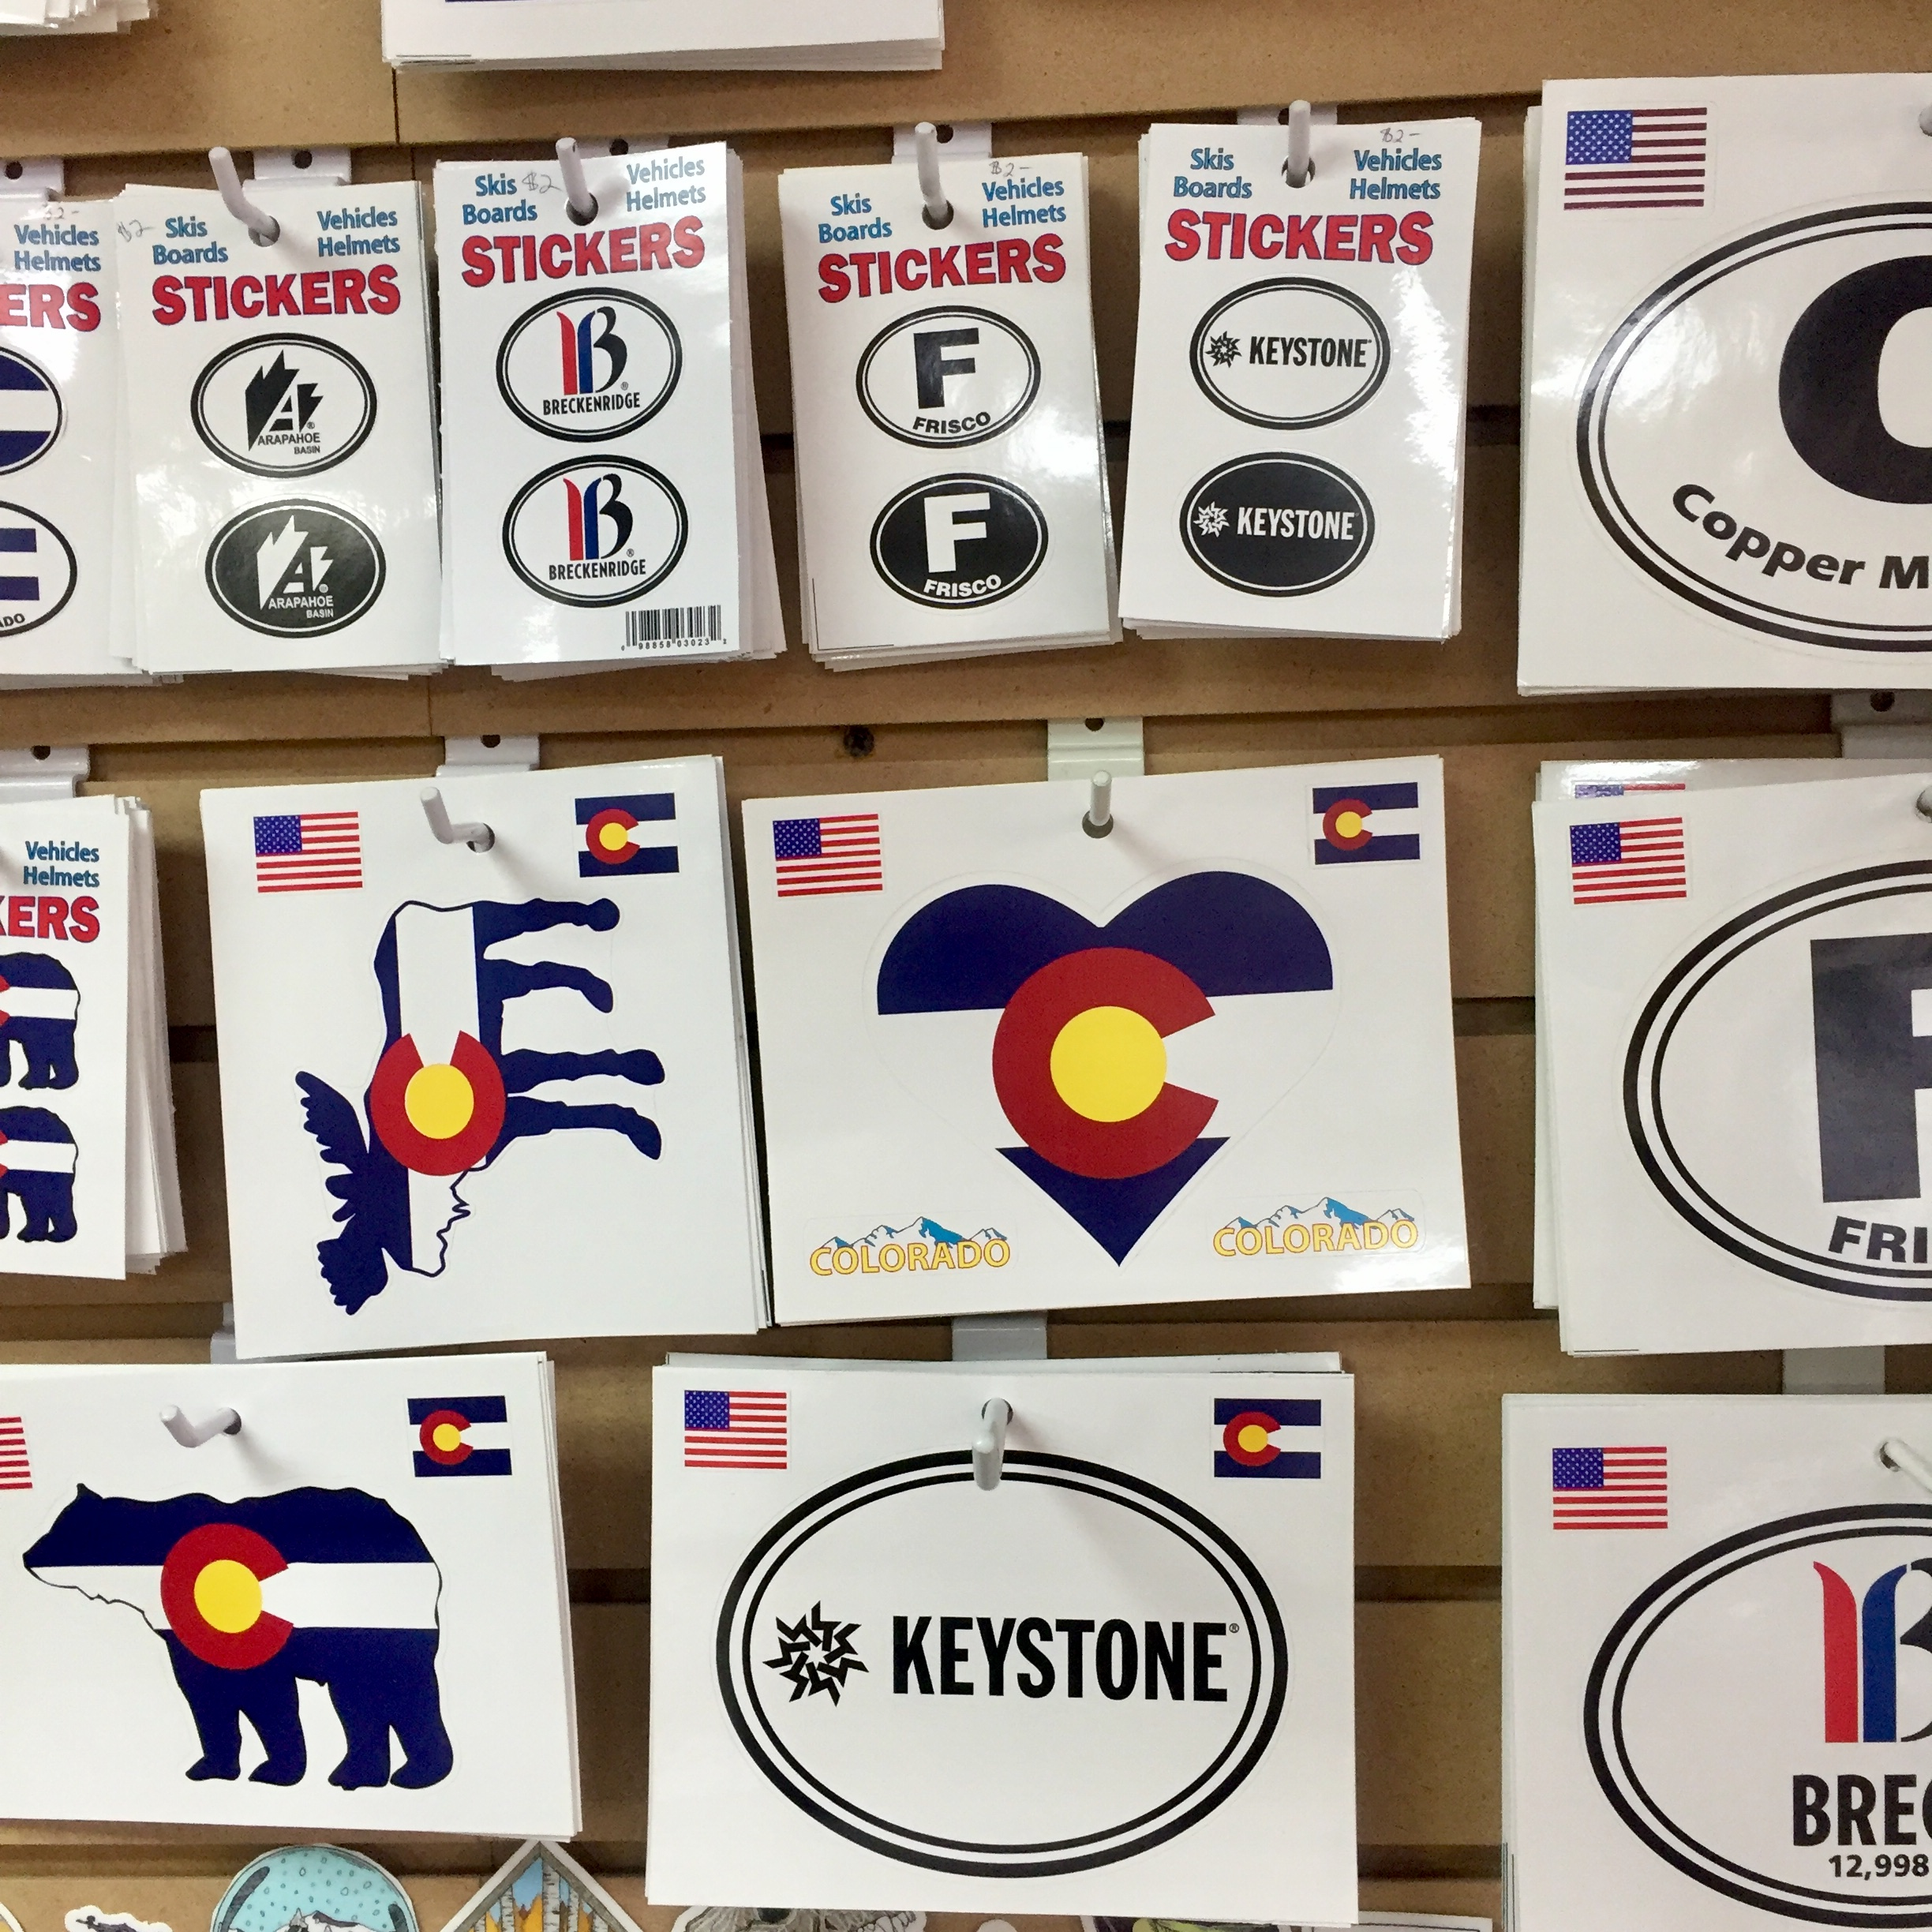 I am surrounded by stickers every day! These are from Snow Business, a local Summit County company.